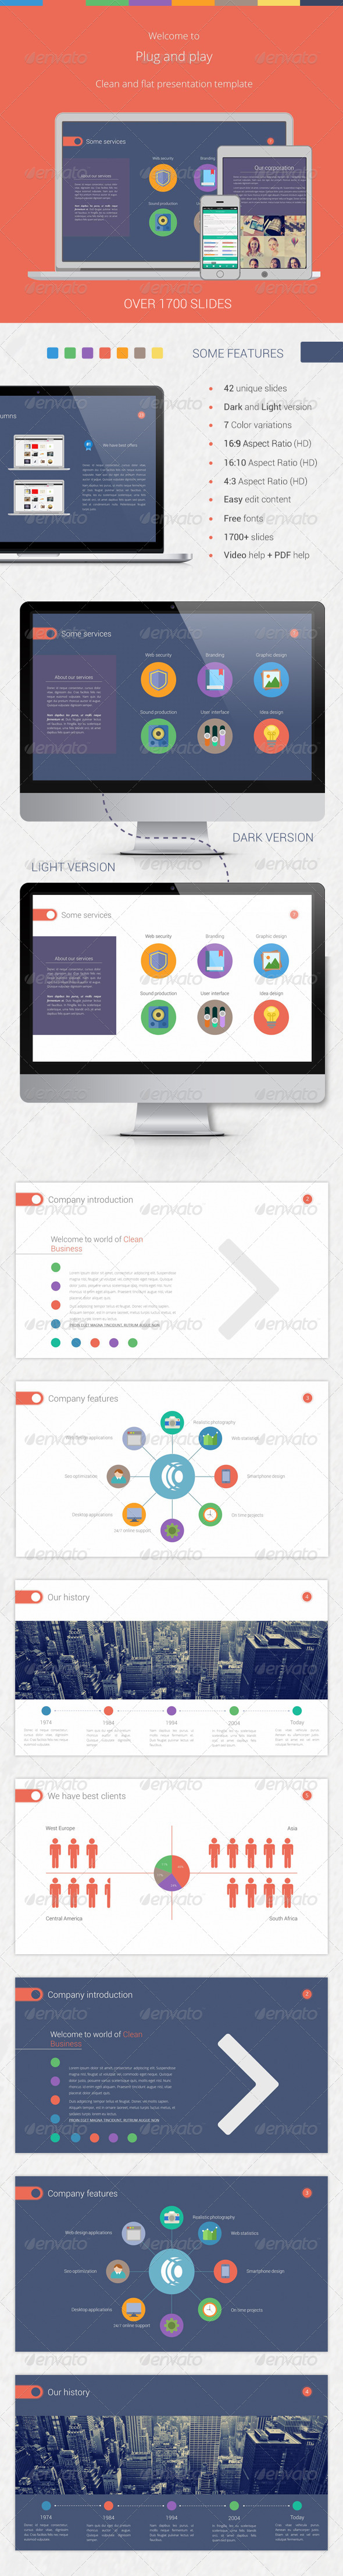 GraphicRiver Plug and Play Pack 8119622